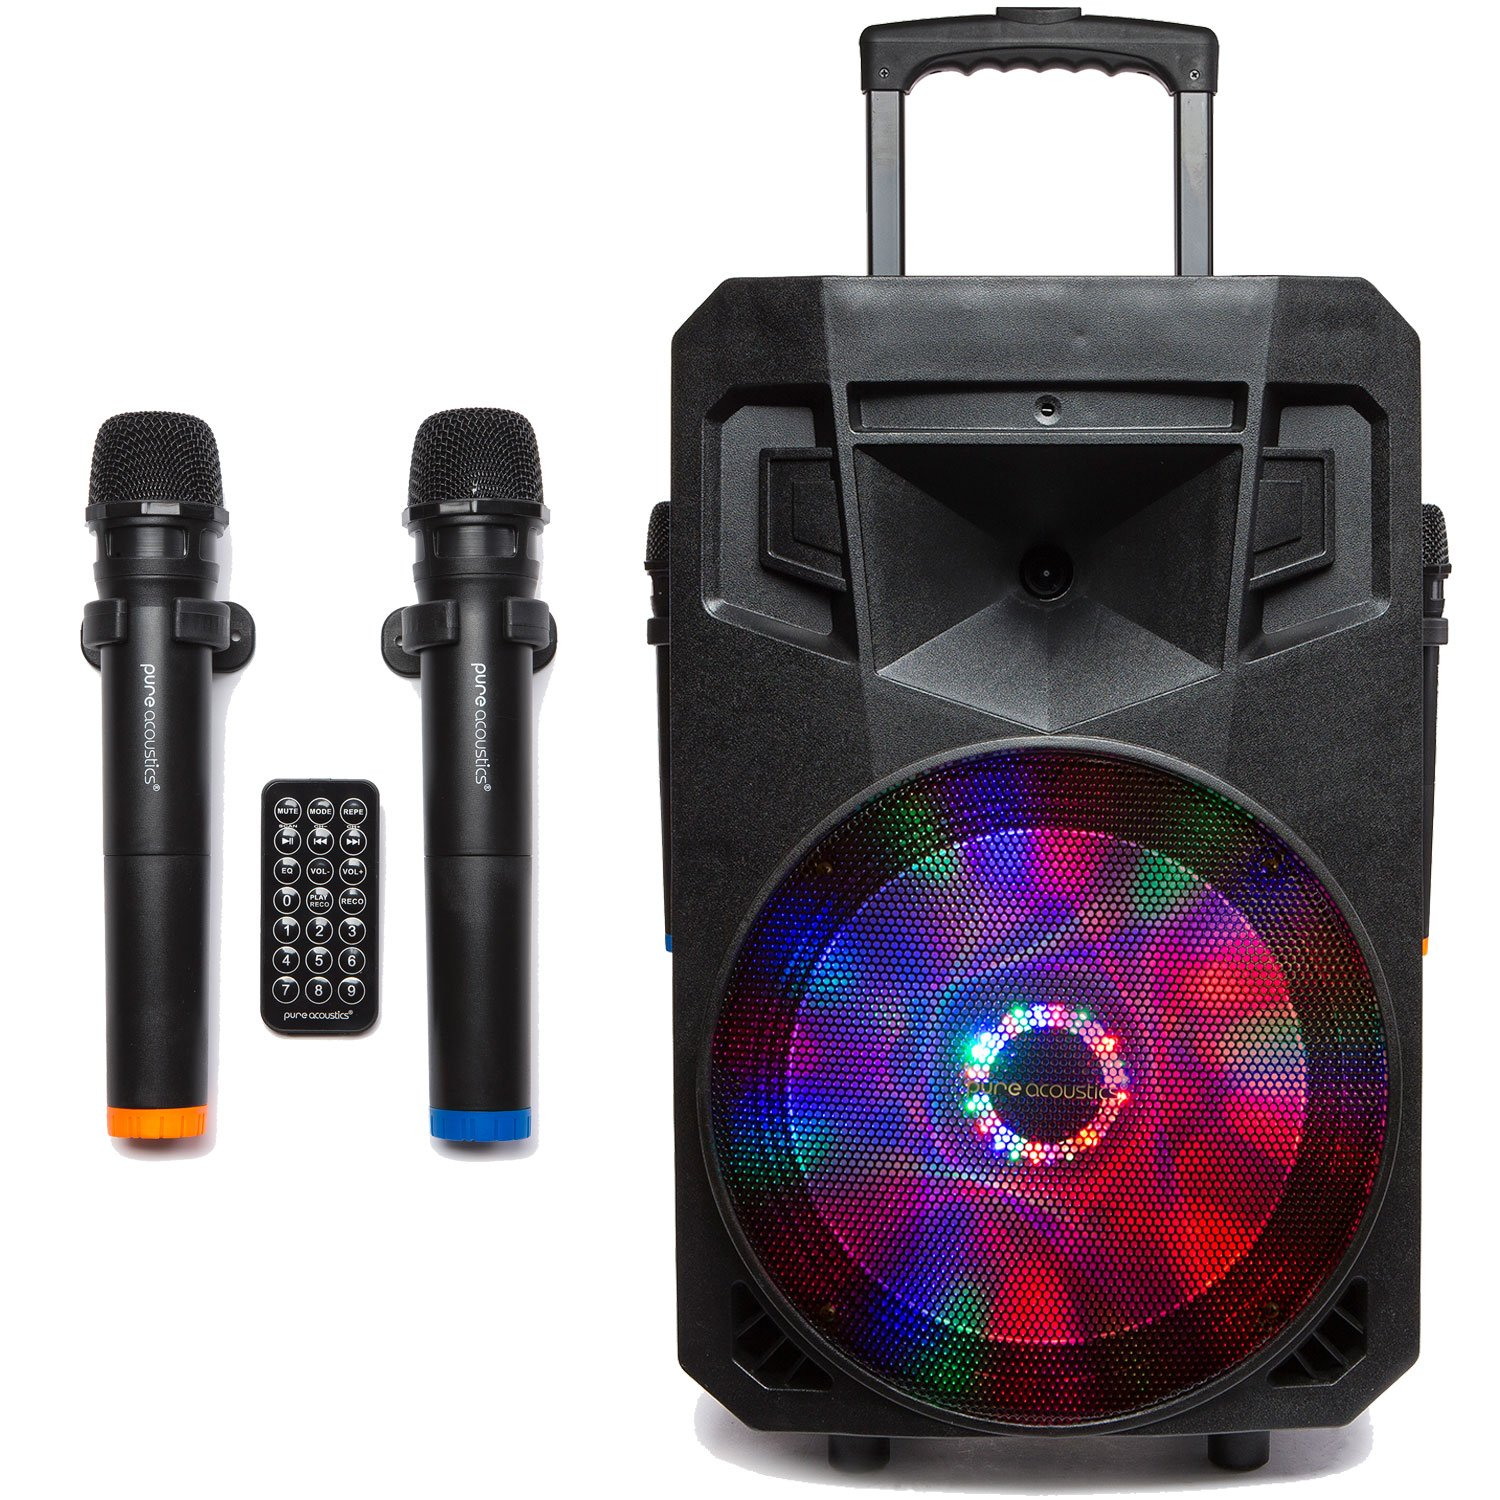 PA System with LED Party Lights, Wireless Portable Bluetooth 12'' Audio Speaker with 2 Wireless Microphones FM Radio Party Karaoke Machine Sound System MCP-212 Soundstream by Pure Acoustics